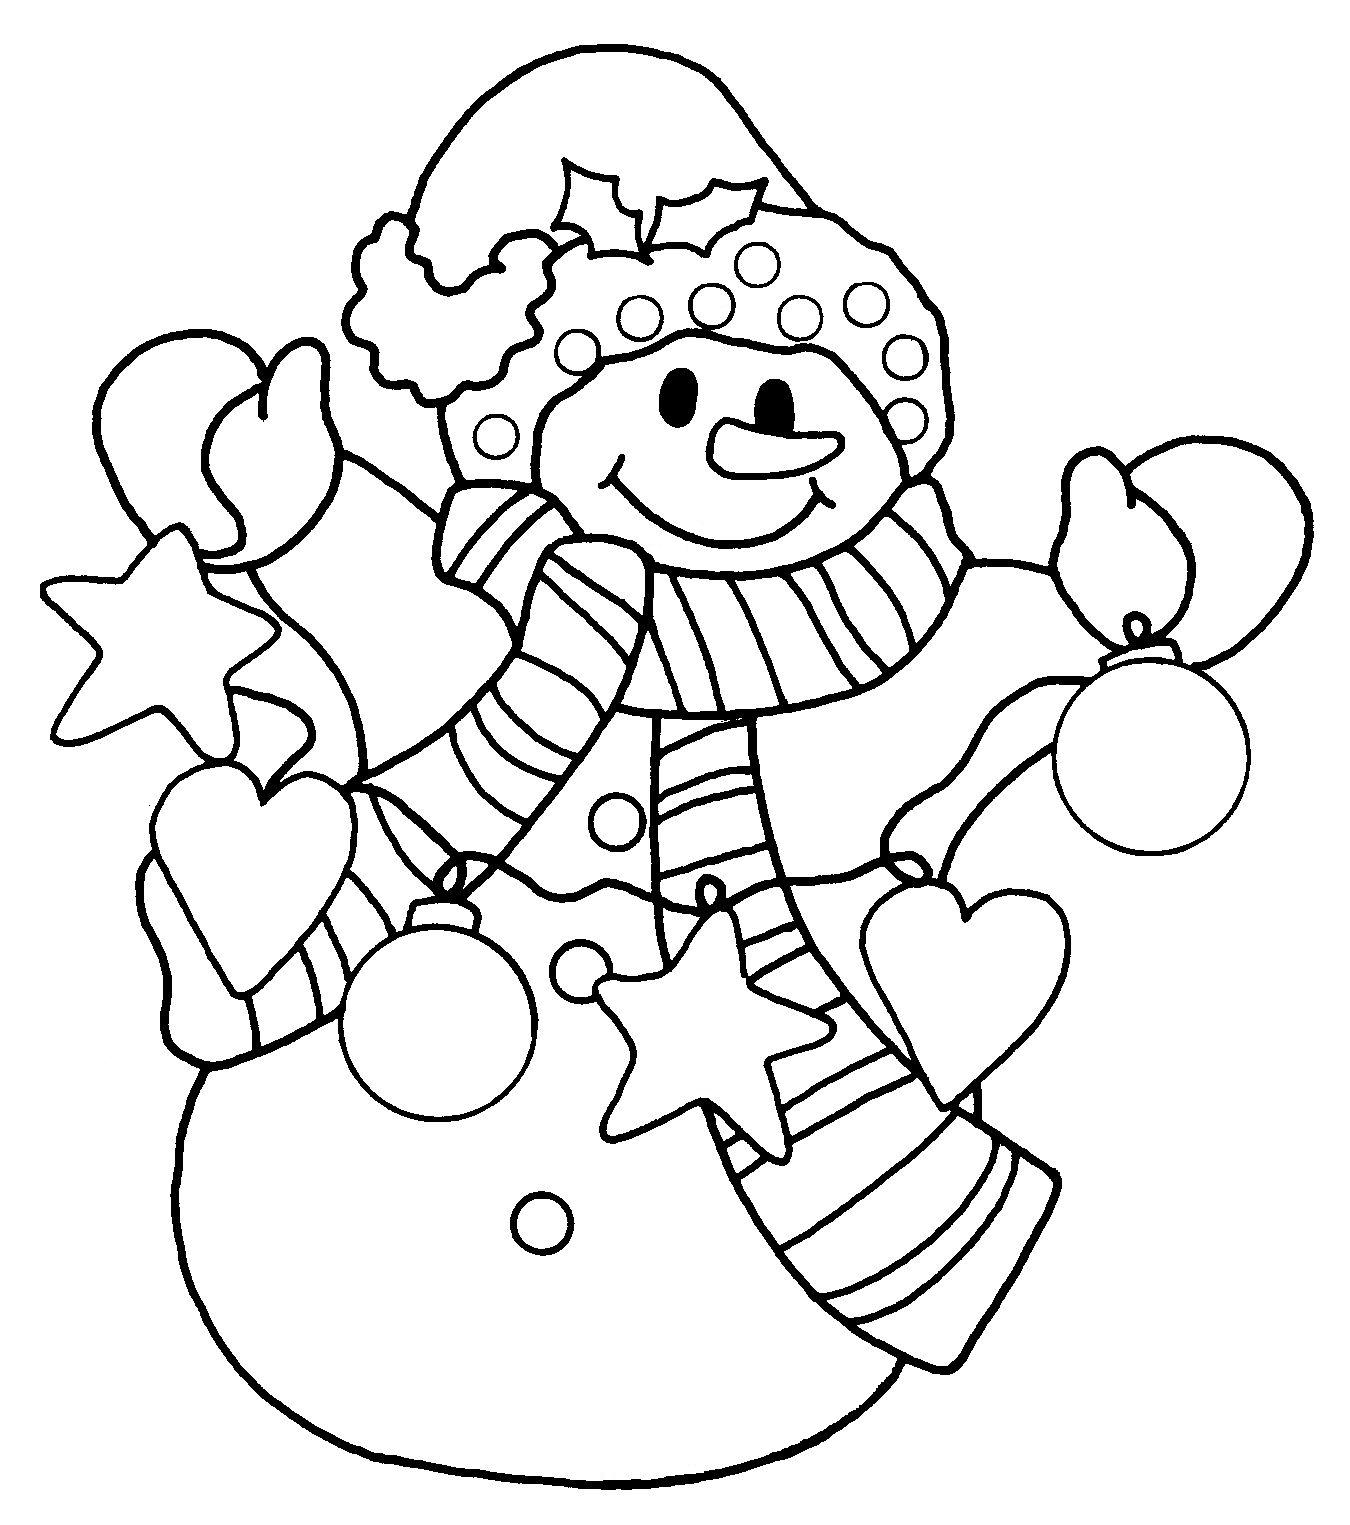 Mesmerizing image within free winter coloring pages printable